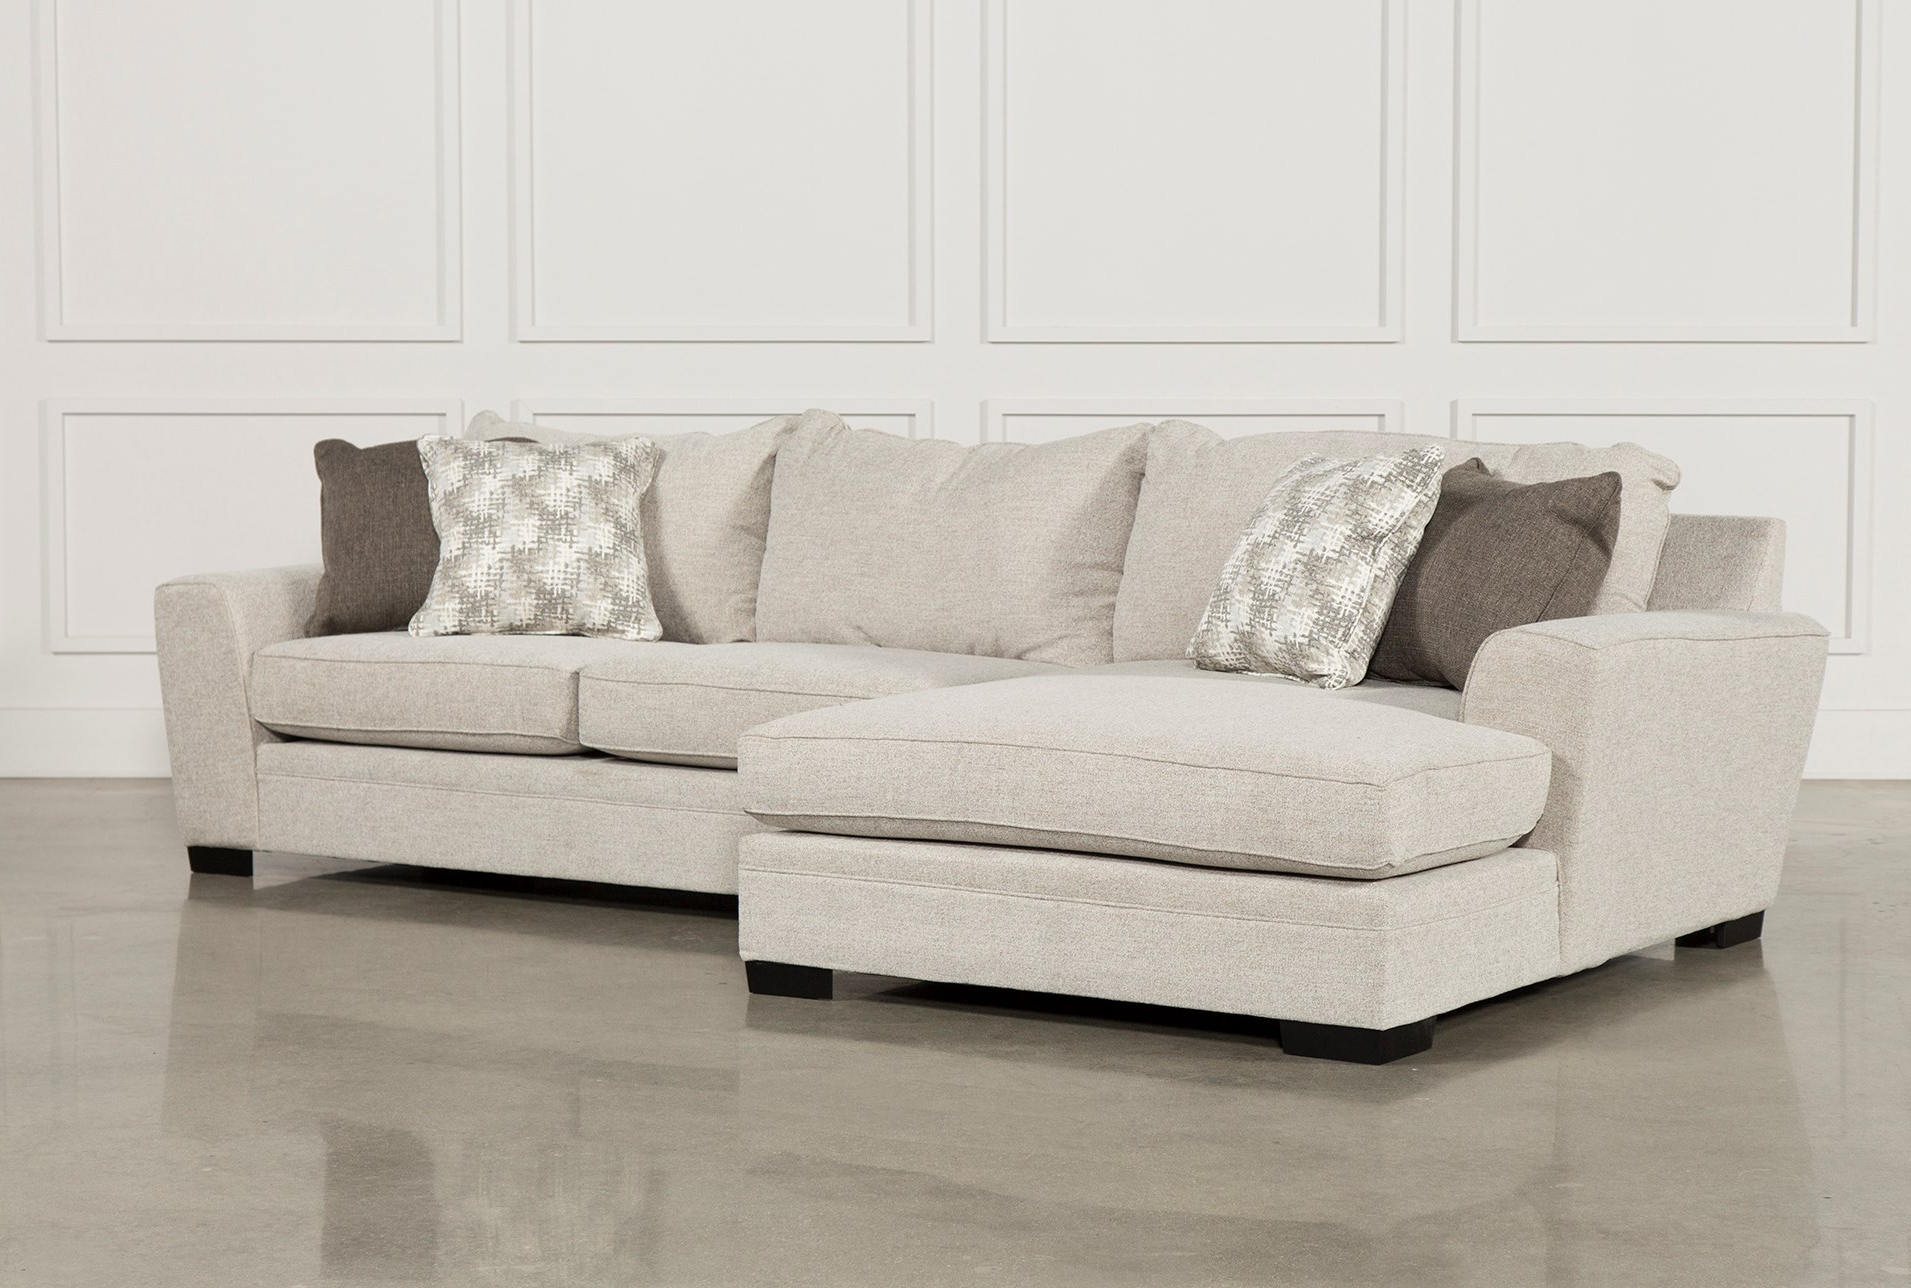 Favorite Avery 2 Piece Sectionals With Raf Armless Chaise Regarding 2 Piece Sectional With Chaise – Tidex (Gallery 5 of 20)